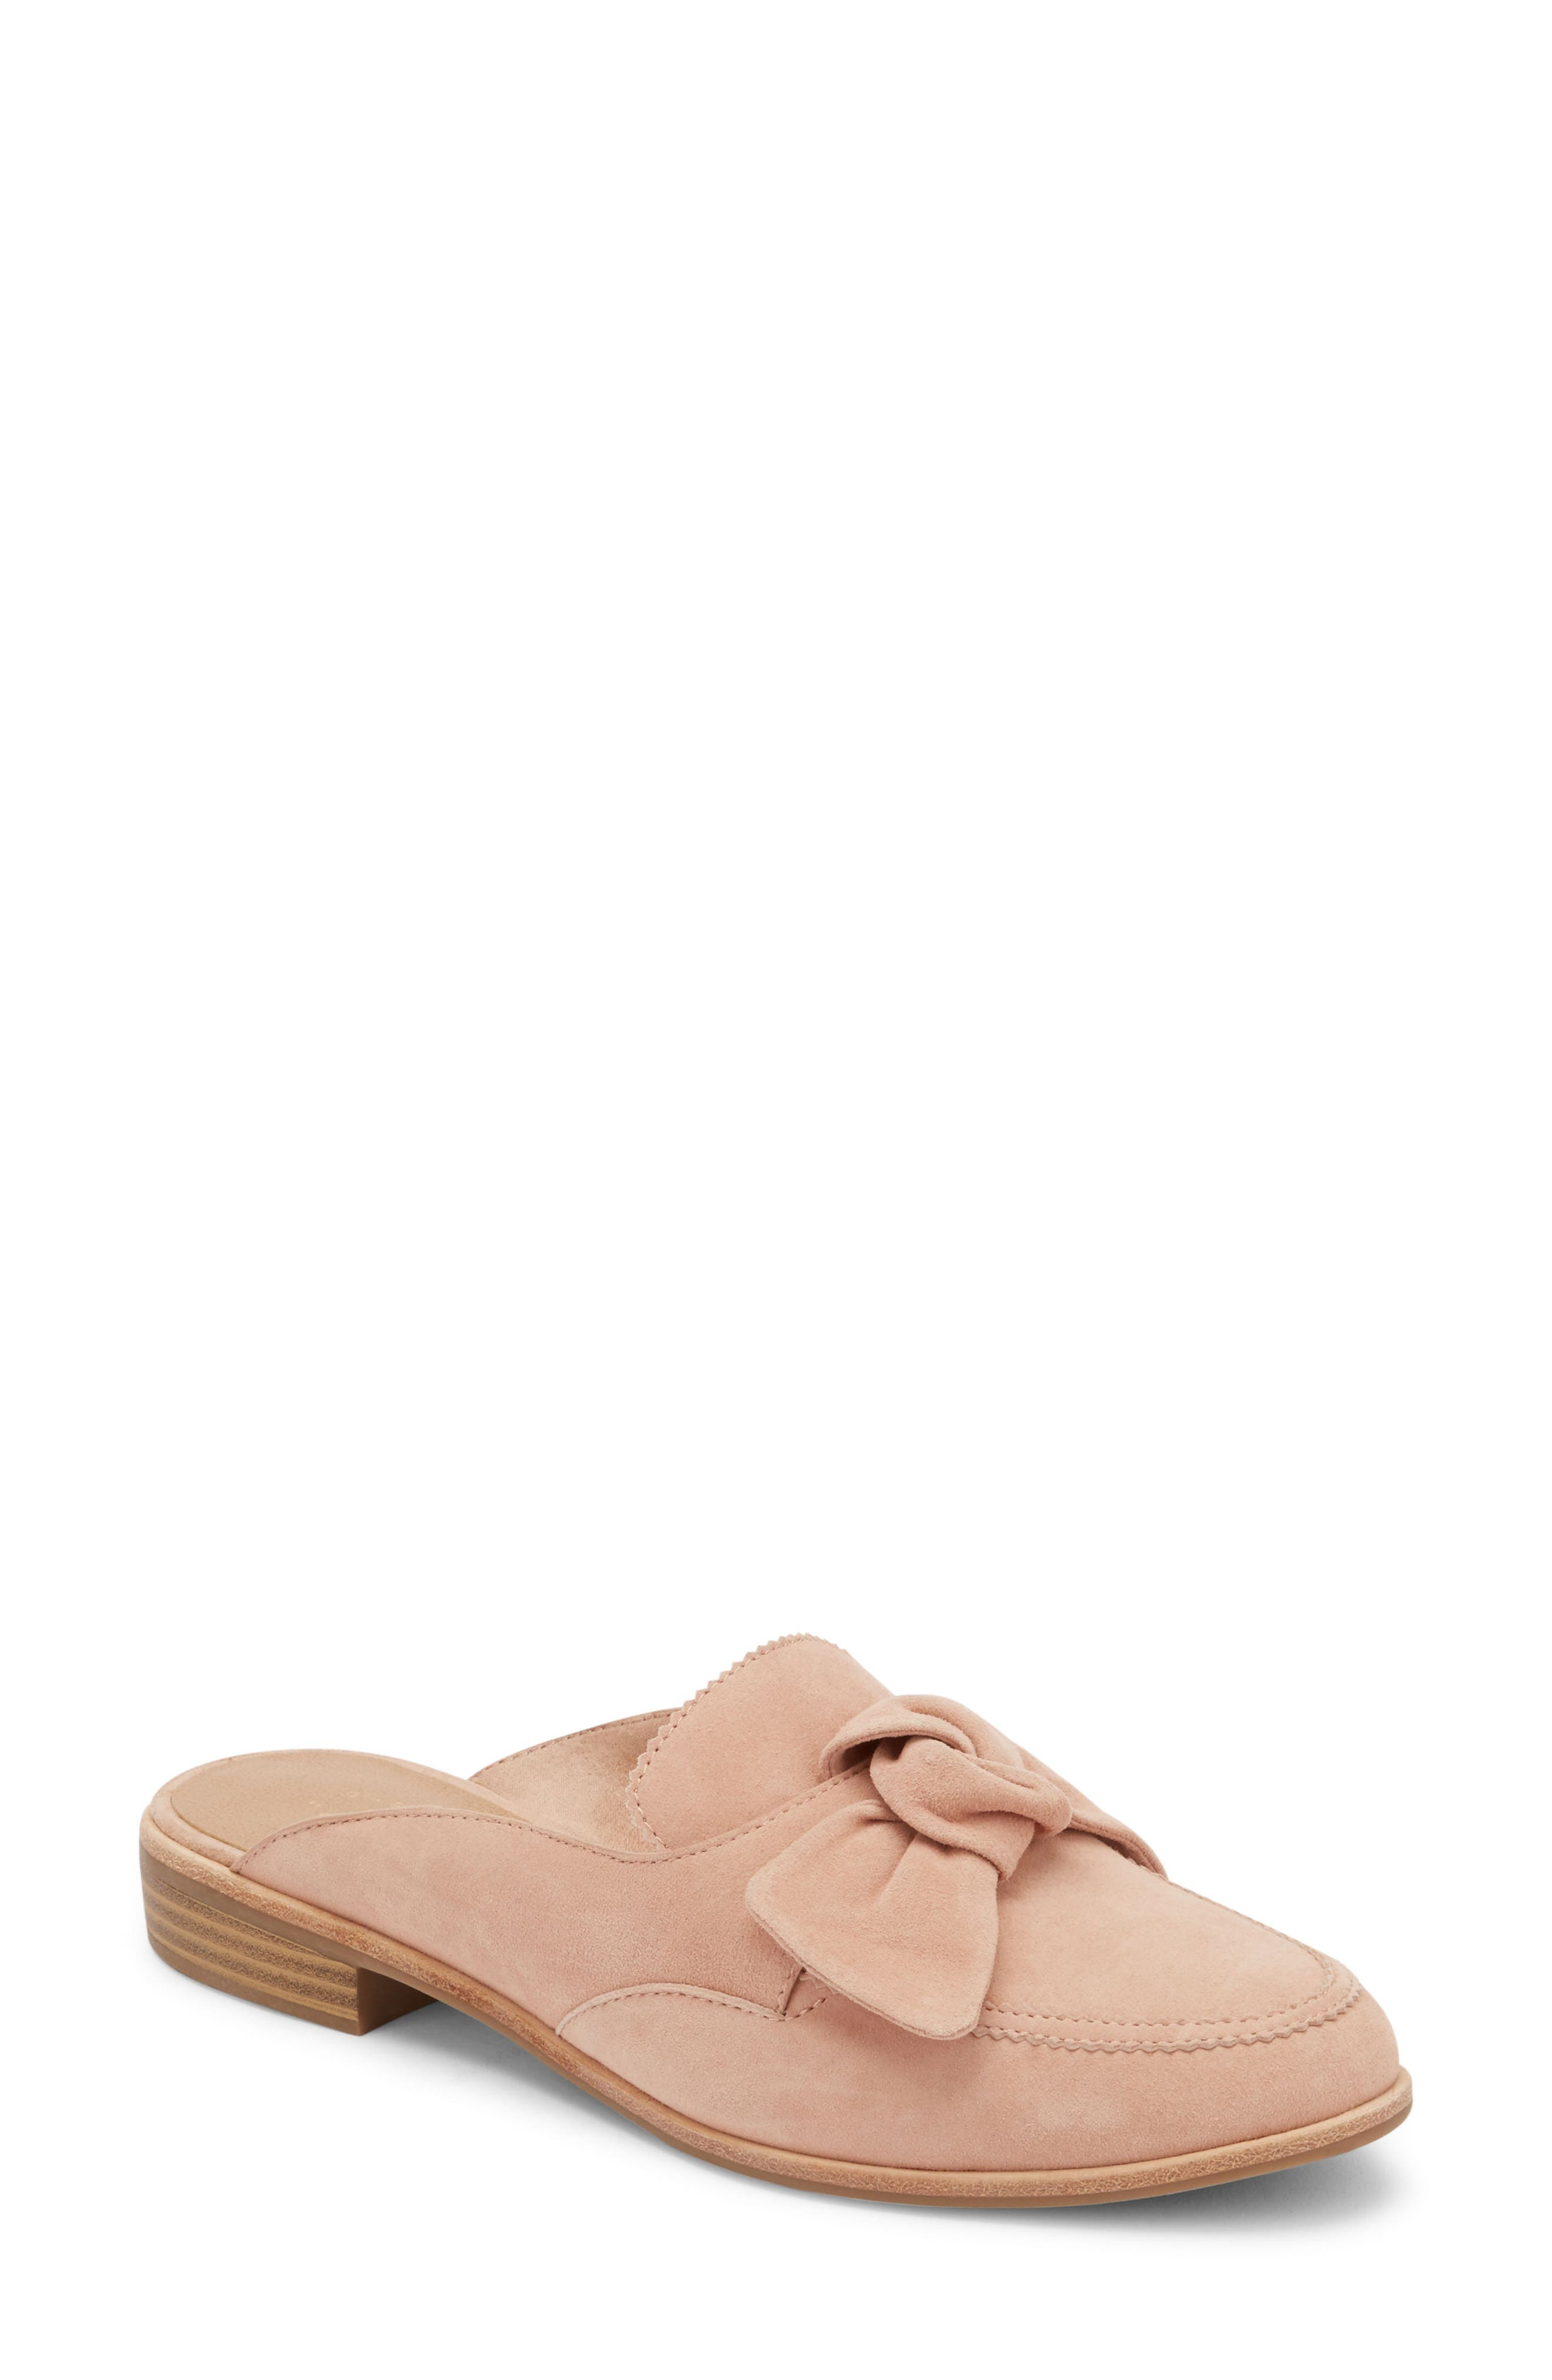 G.H. BASS & CO. Ebbie Bow Mule in Rose Suede